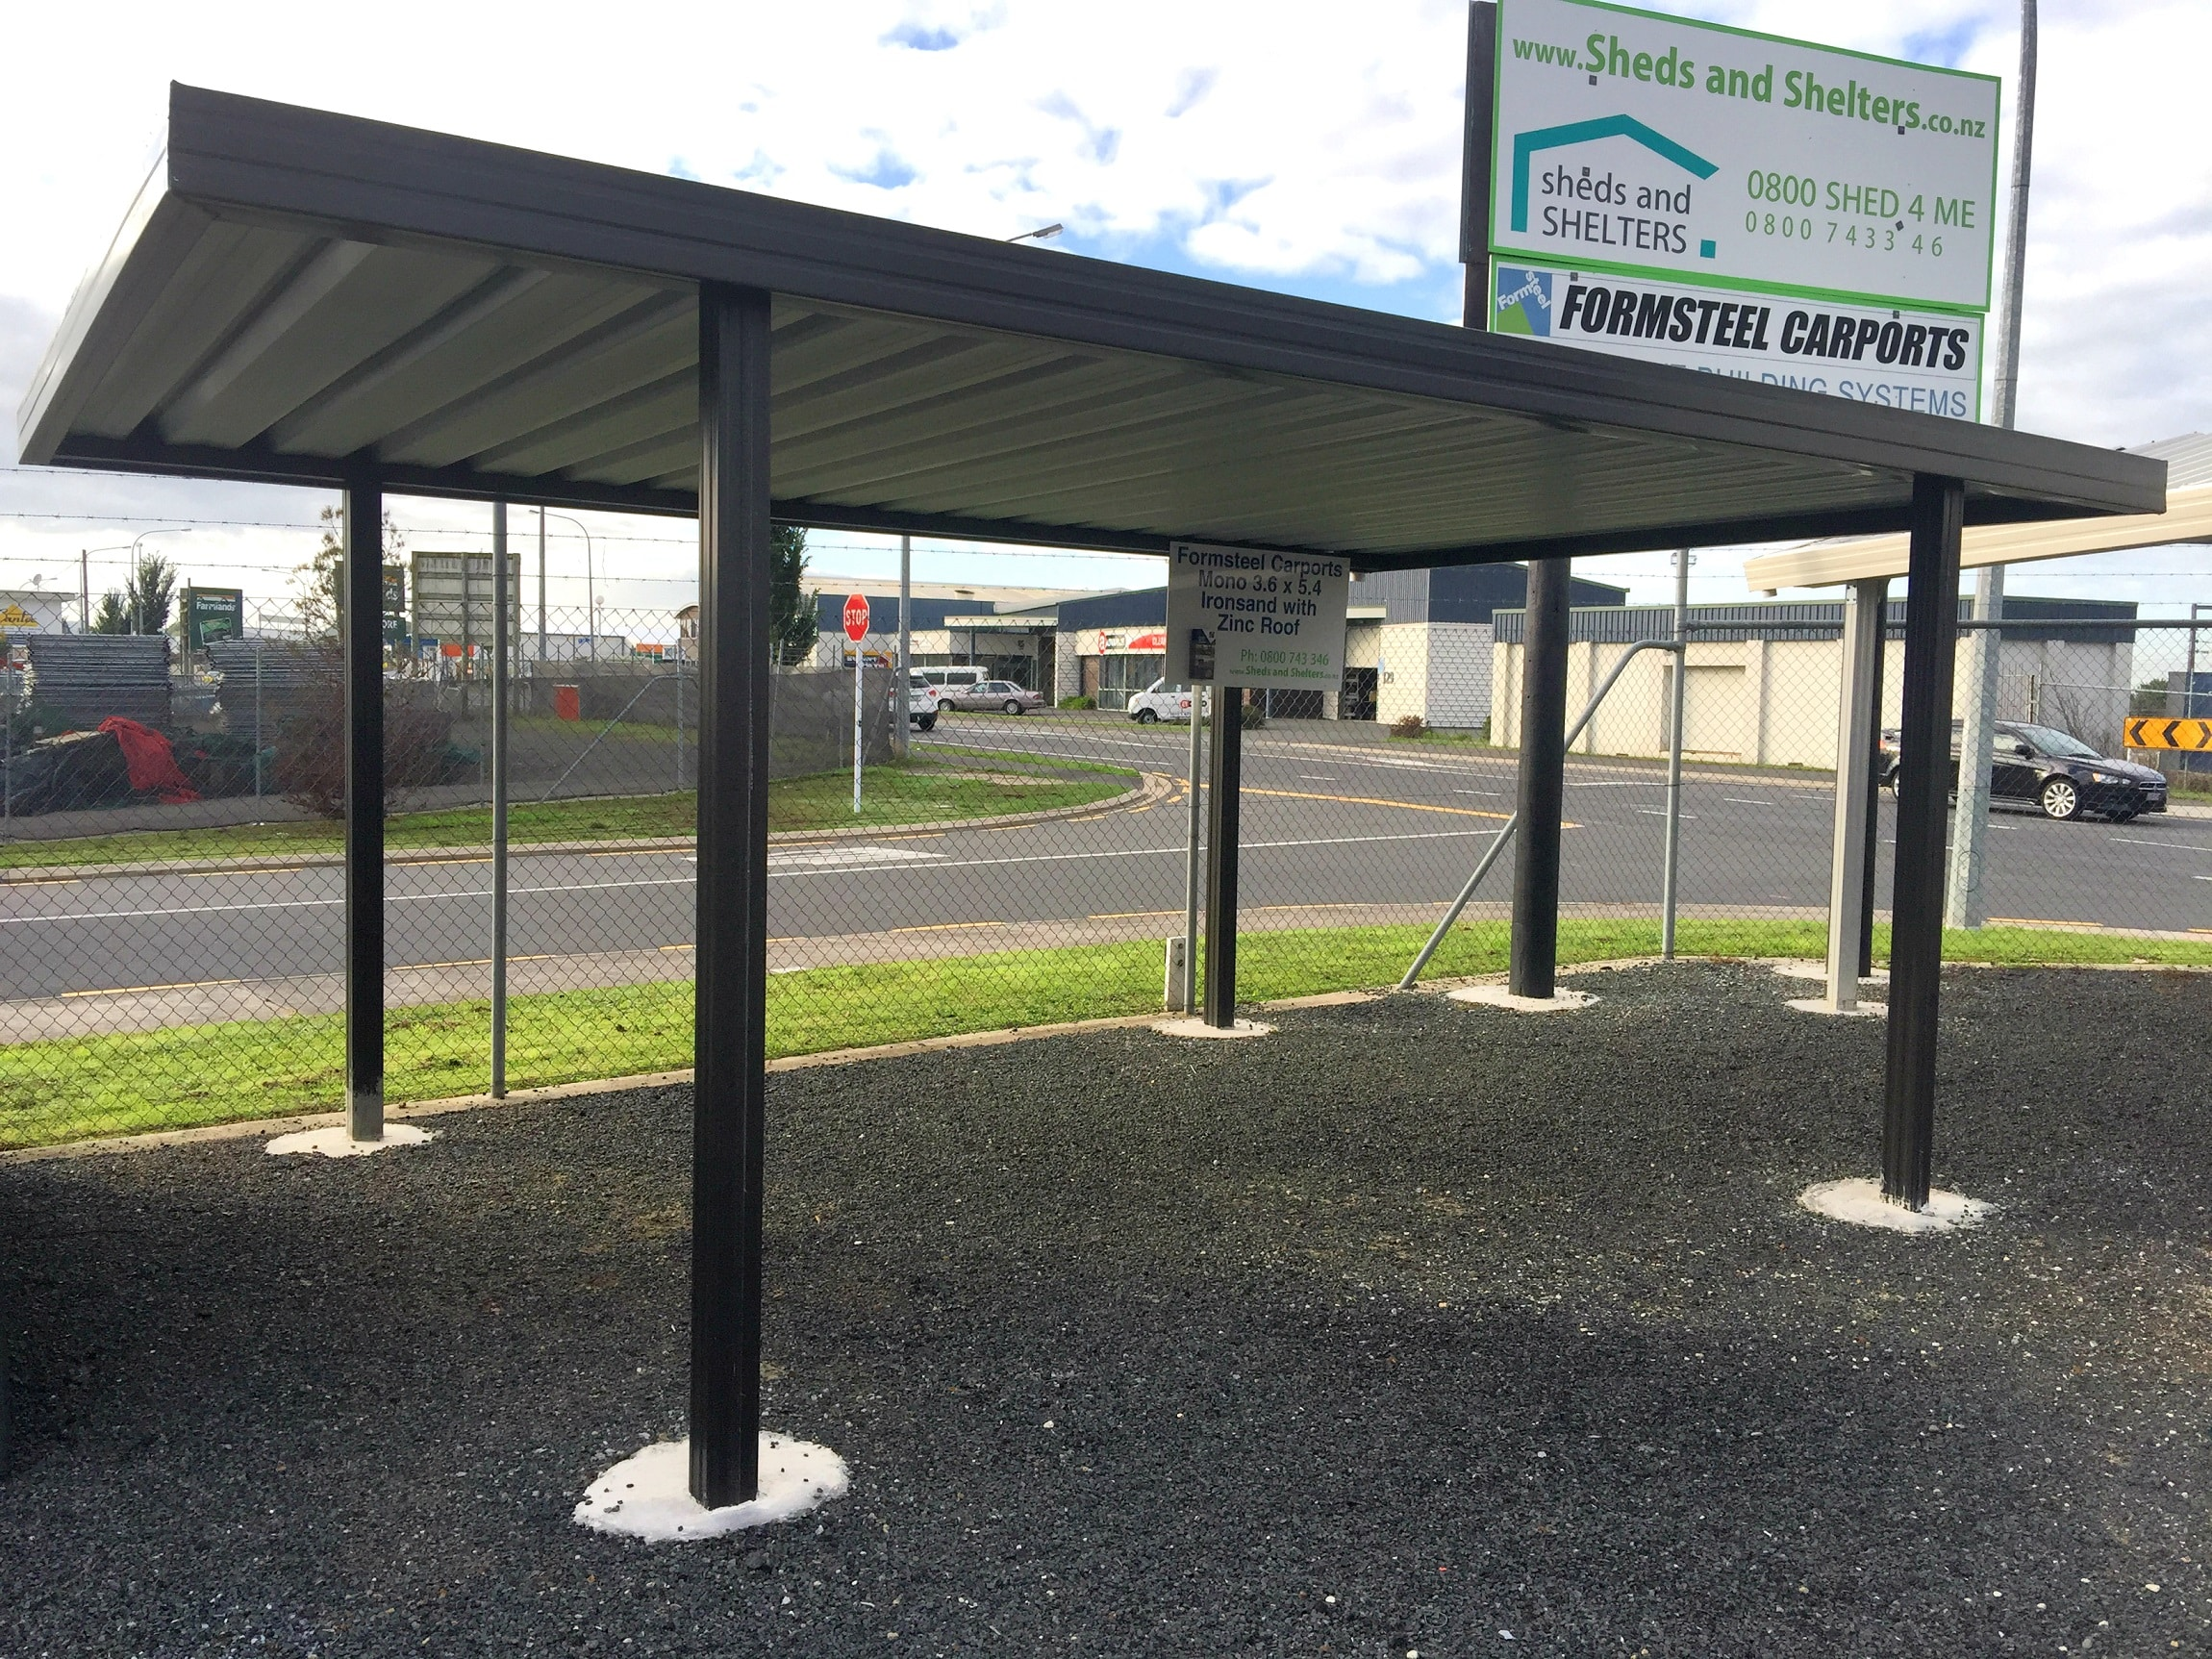 Formsteel Carports Sheds And Shelters